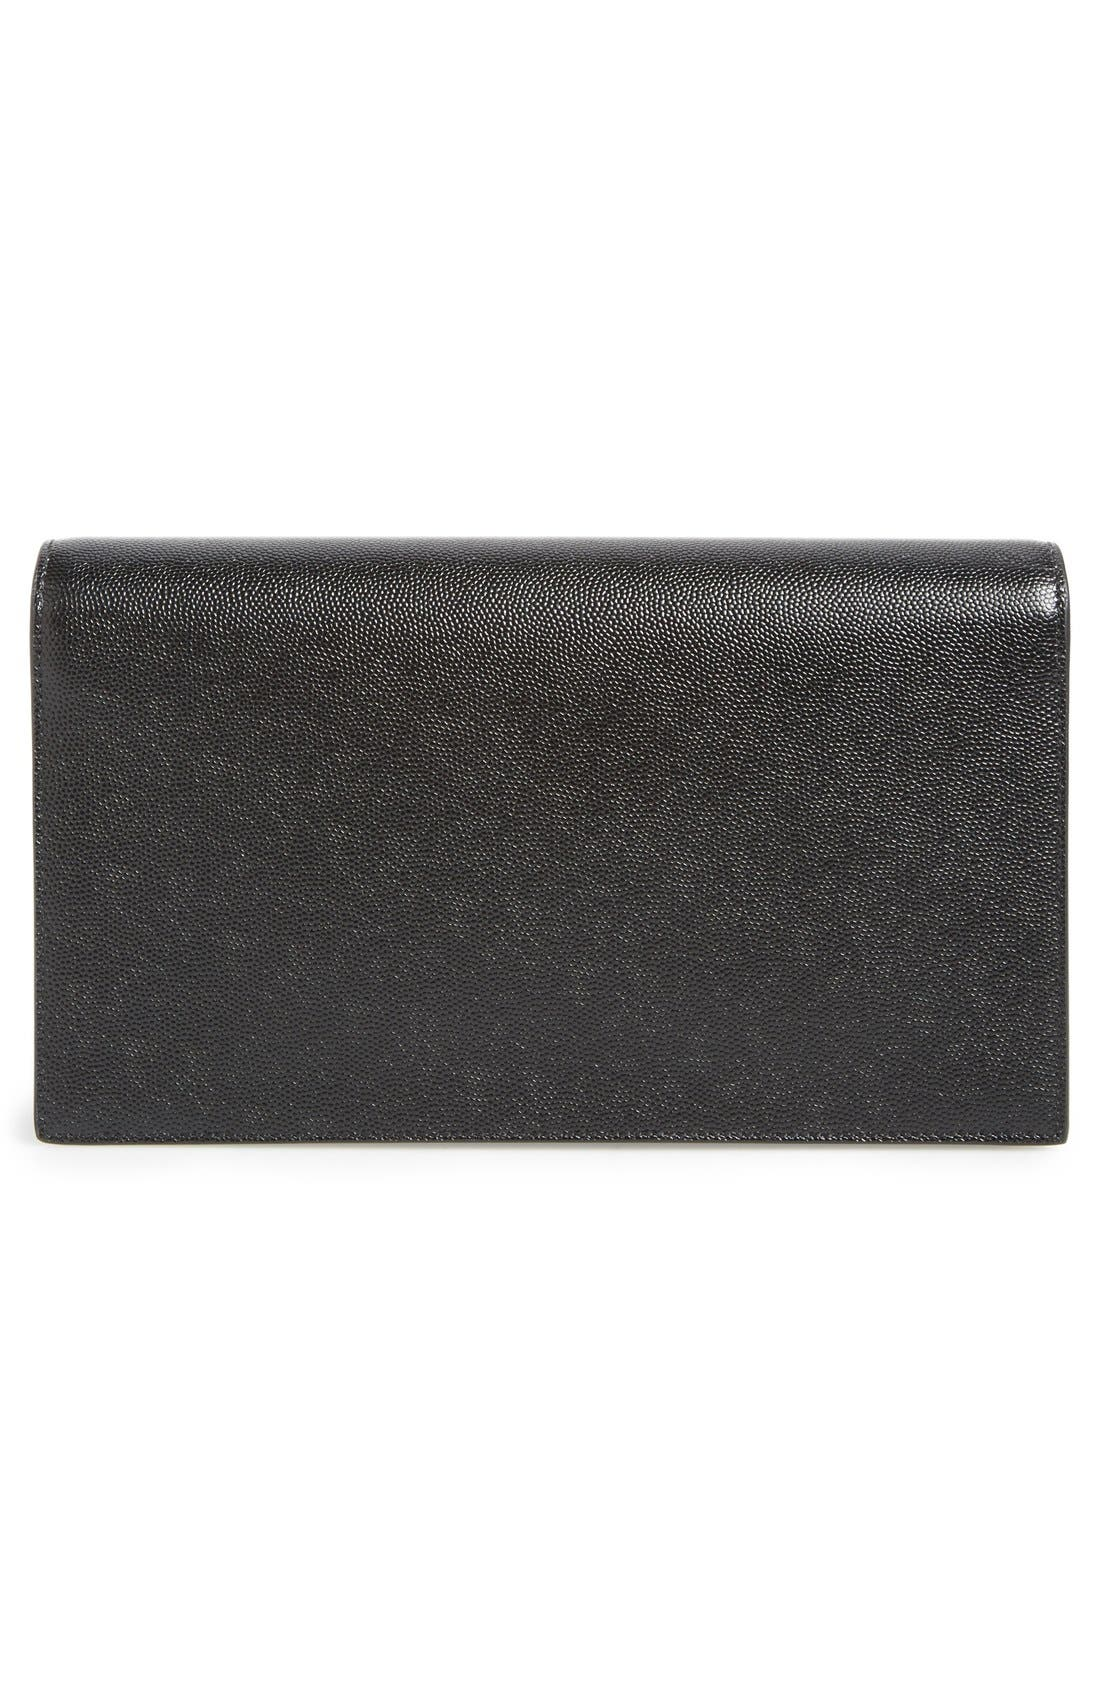 Alternate Image 3  - Saint Laurent 'Monogram' Leather Clutch